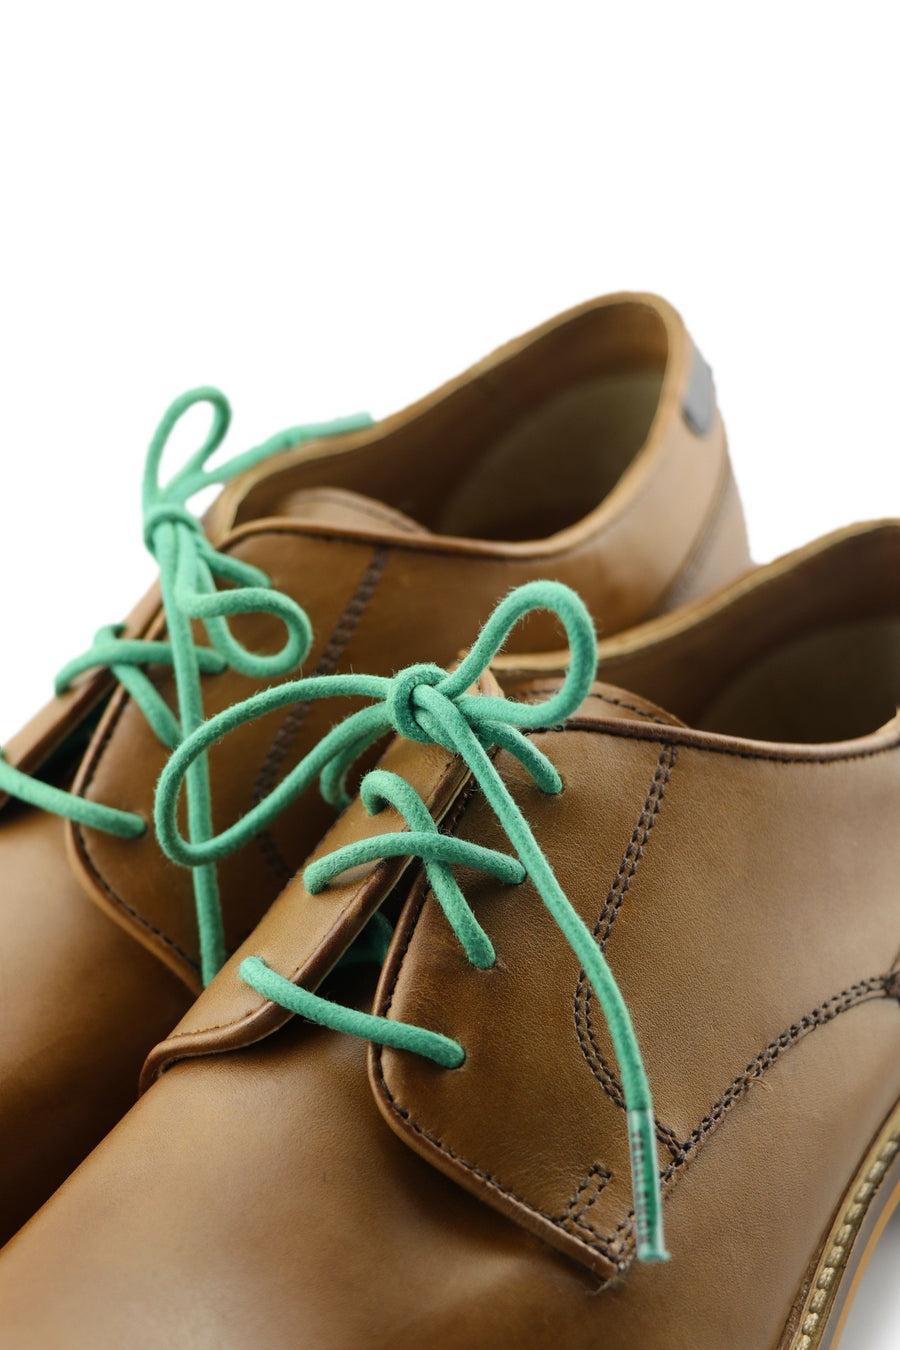 Shoe Laces Mint Leaves Waxed Cotton Ted and Lemon